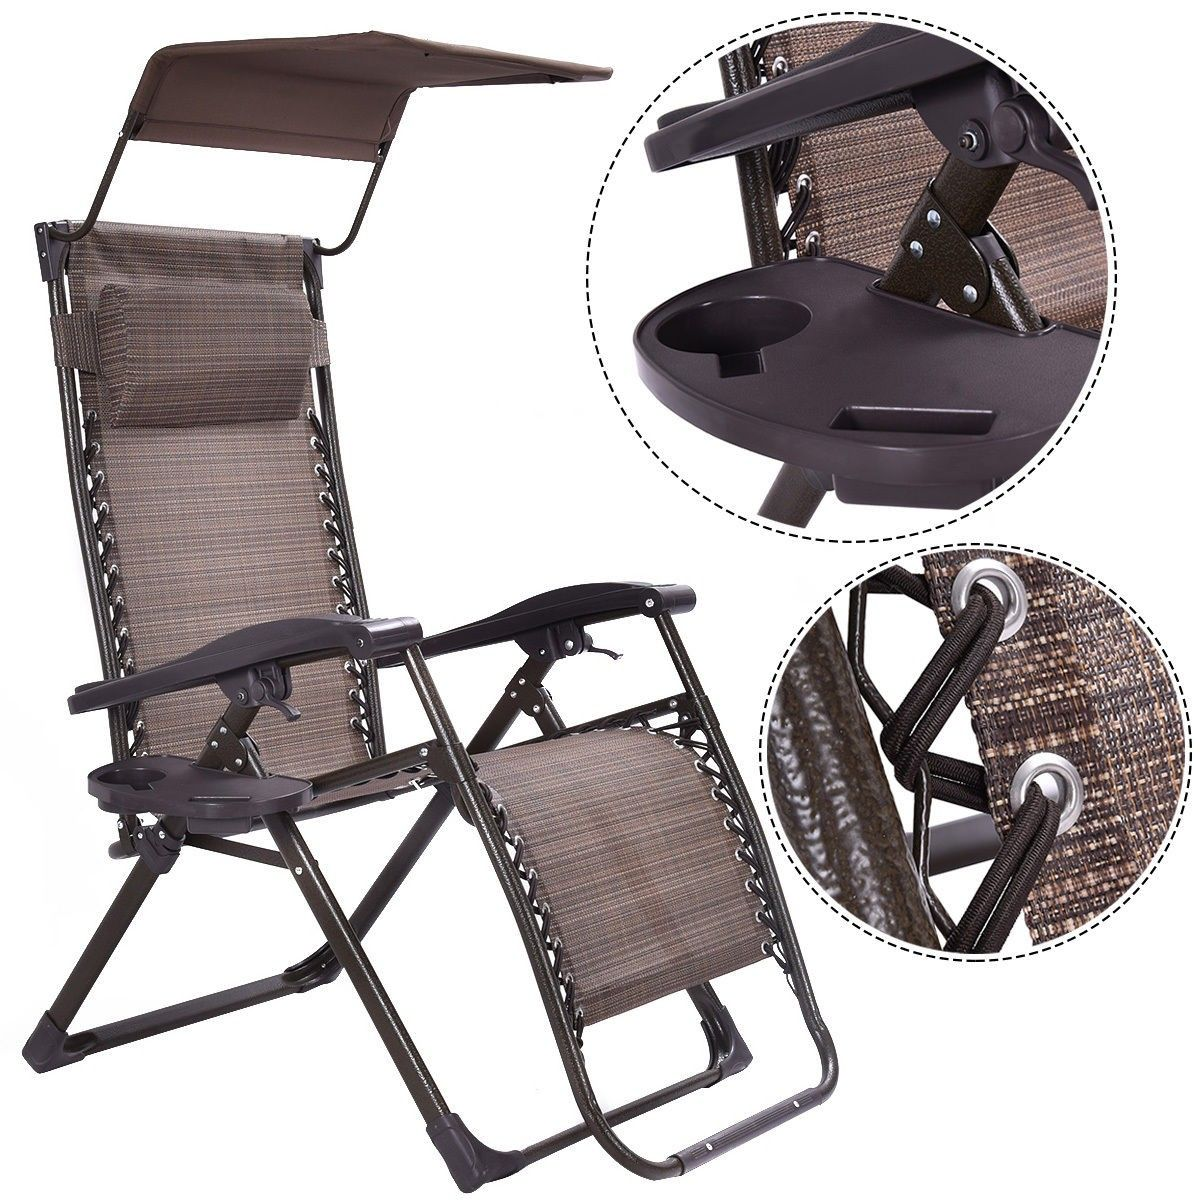 Foldable Zero Gravity Chair Lounge Patio Outdoor Yard Recliner w/  Sunshade+Tray - Patio Recliner Foldable Zero Gravity Lounge Chair Recliner, Patios